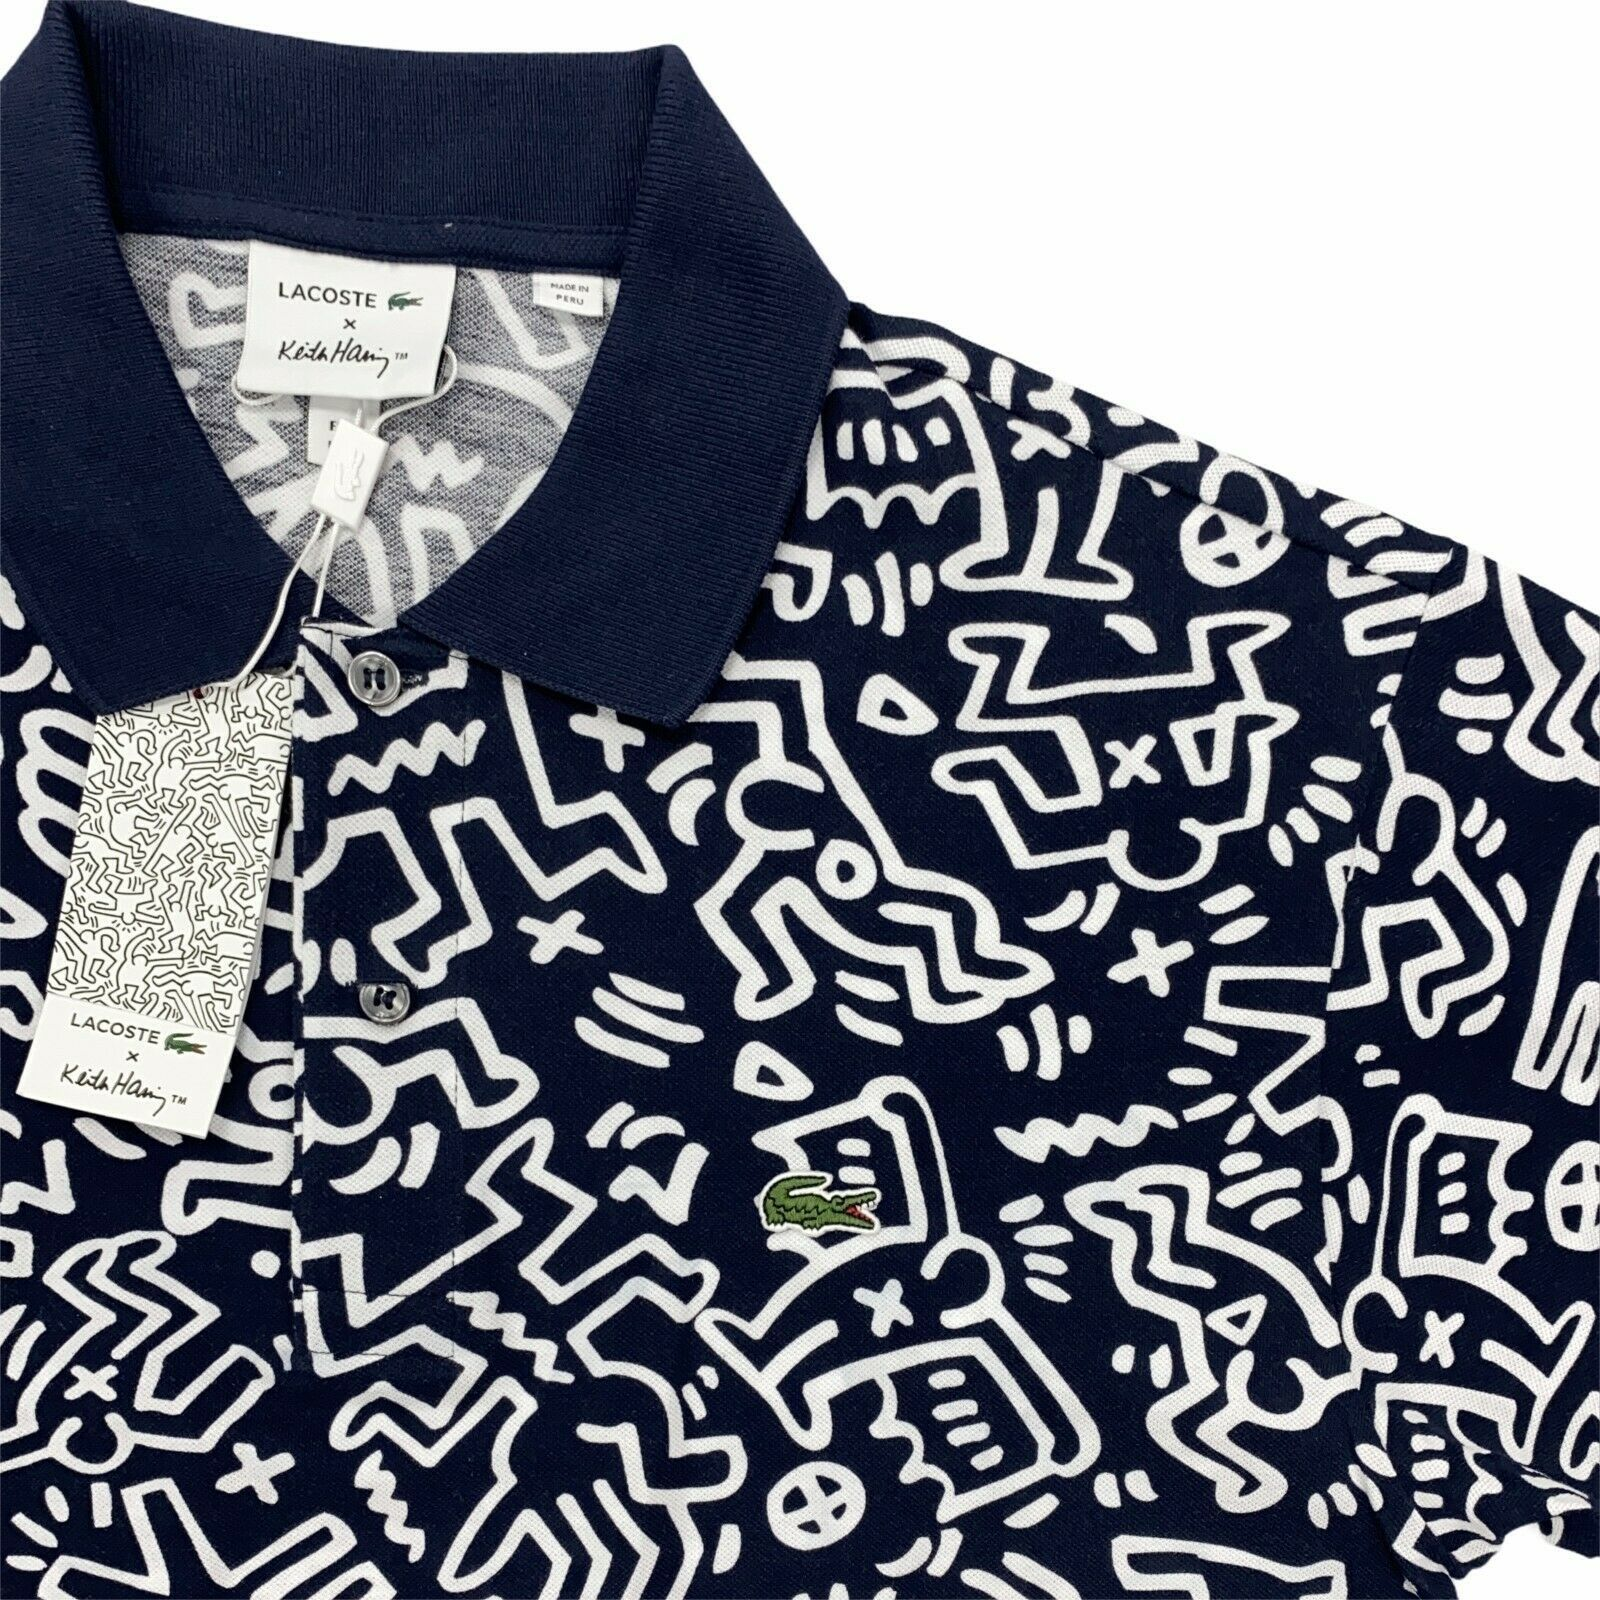 Primary image for New Men's Lacoste x Keith Haring Polo Shirt Allover Print Blue White Pique Knit